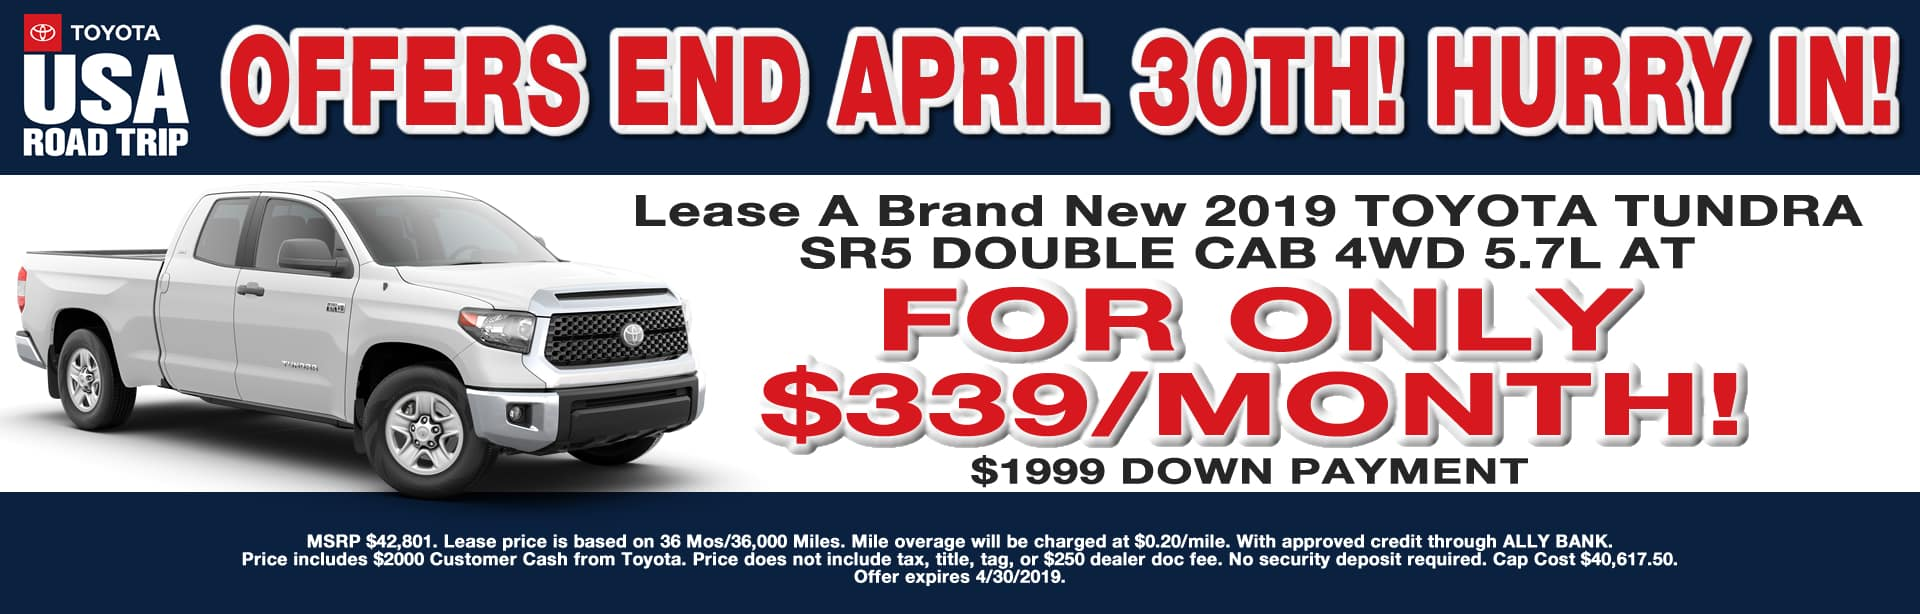 TUNDRA LEASE OFFER CAIN TOYOTA NORTH CANTON OHIO